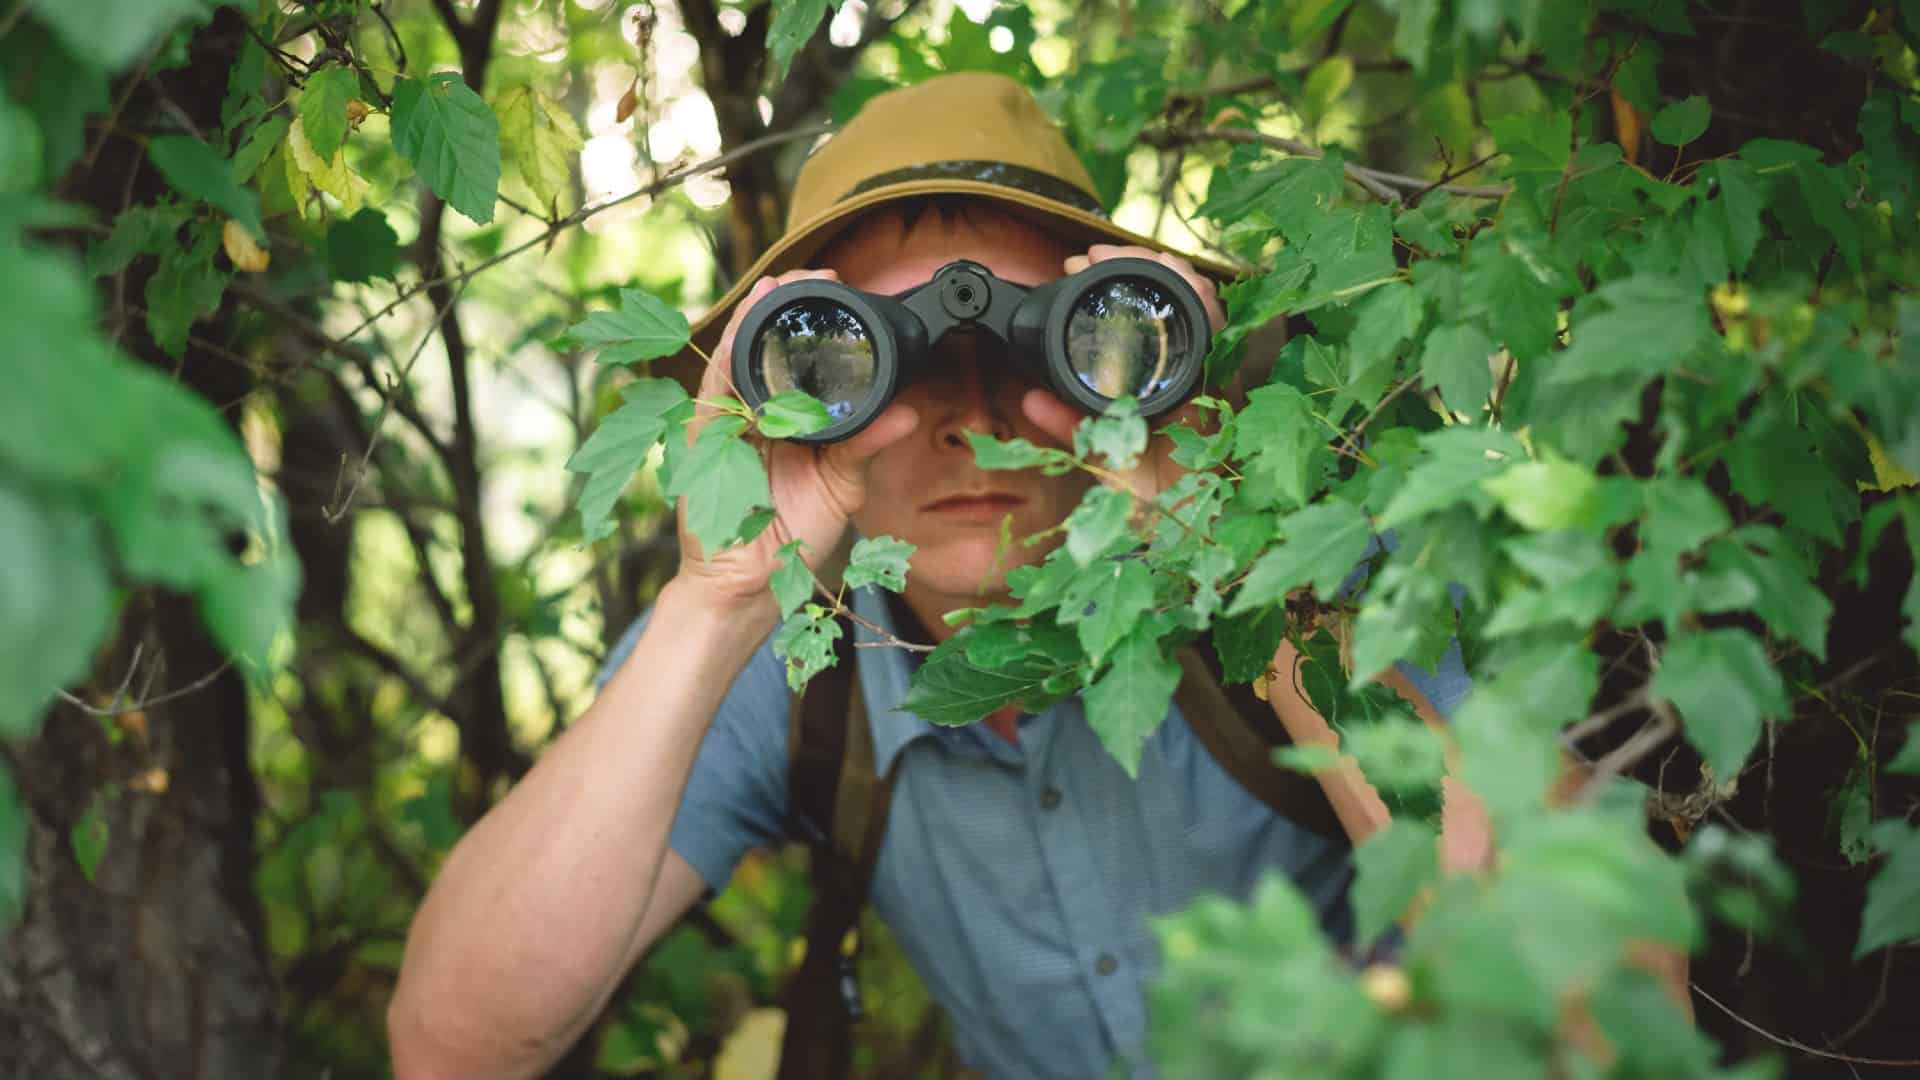 A man with binoculars crouched in the bush, indication a share price on watch